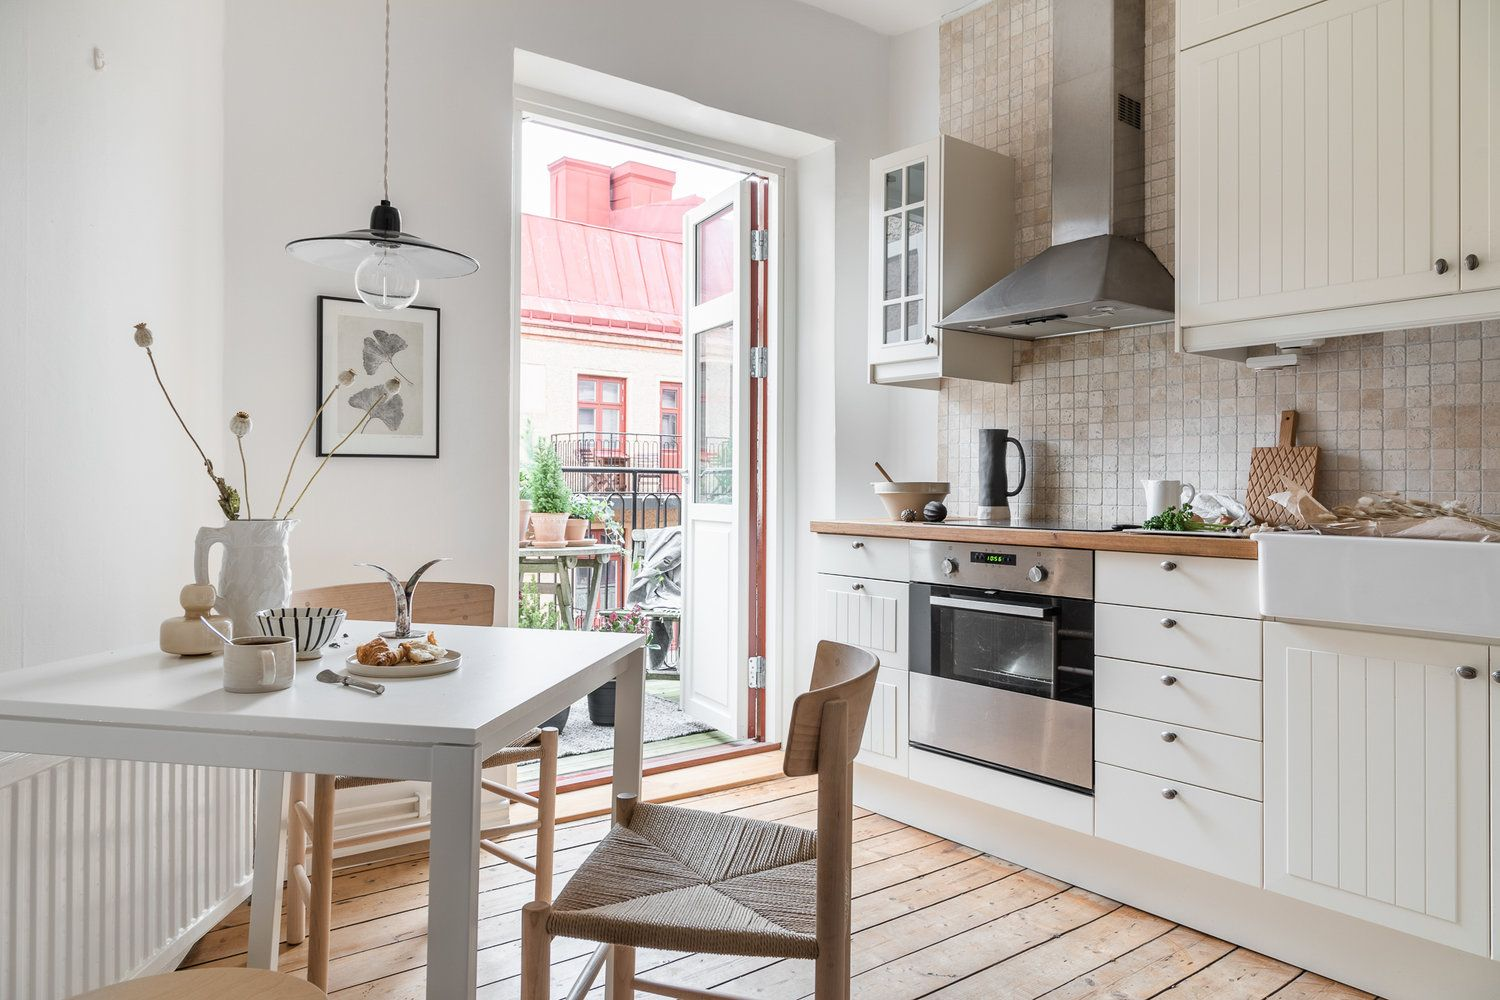 A Serene Scandinavian Studio Apartment The Nordroom Small Space Kitchen Tiny Kitchen Design Scandinavian Style Interior,Colorful Cool Geometric Designs